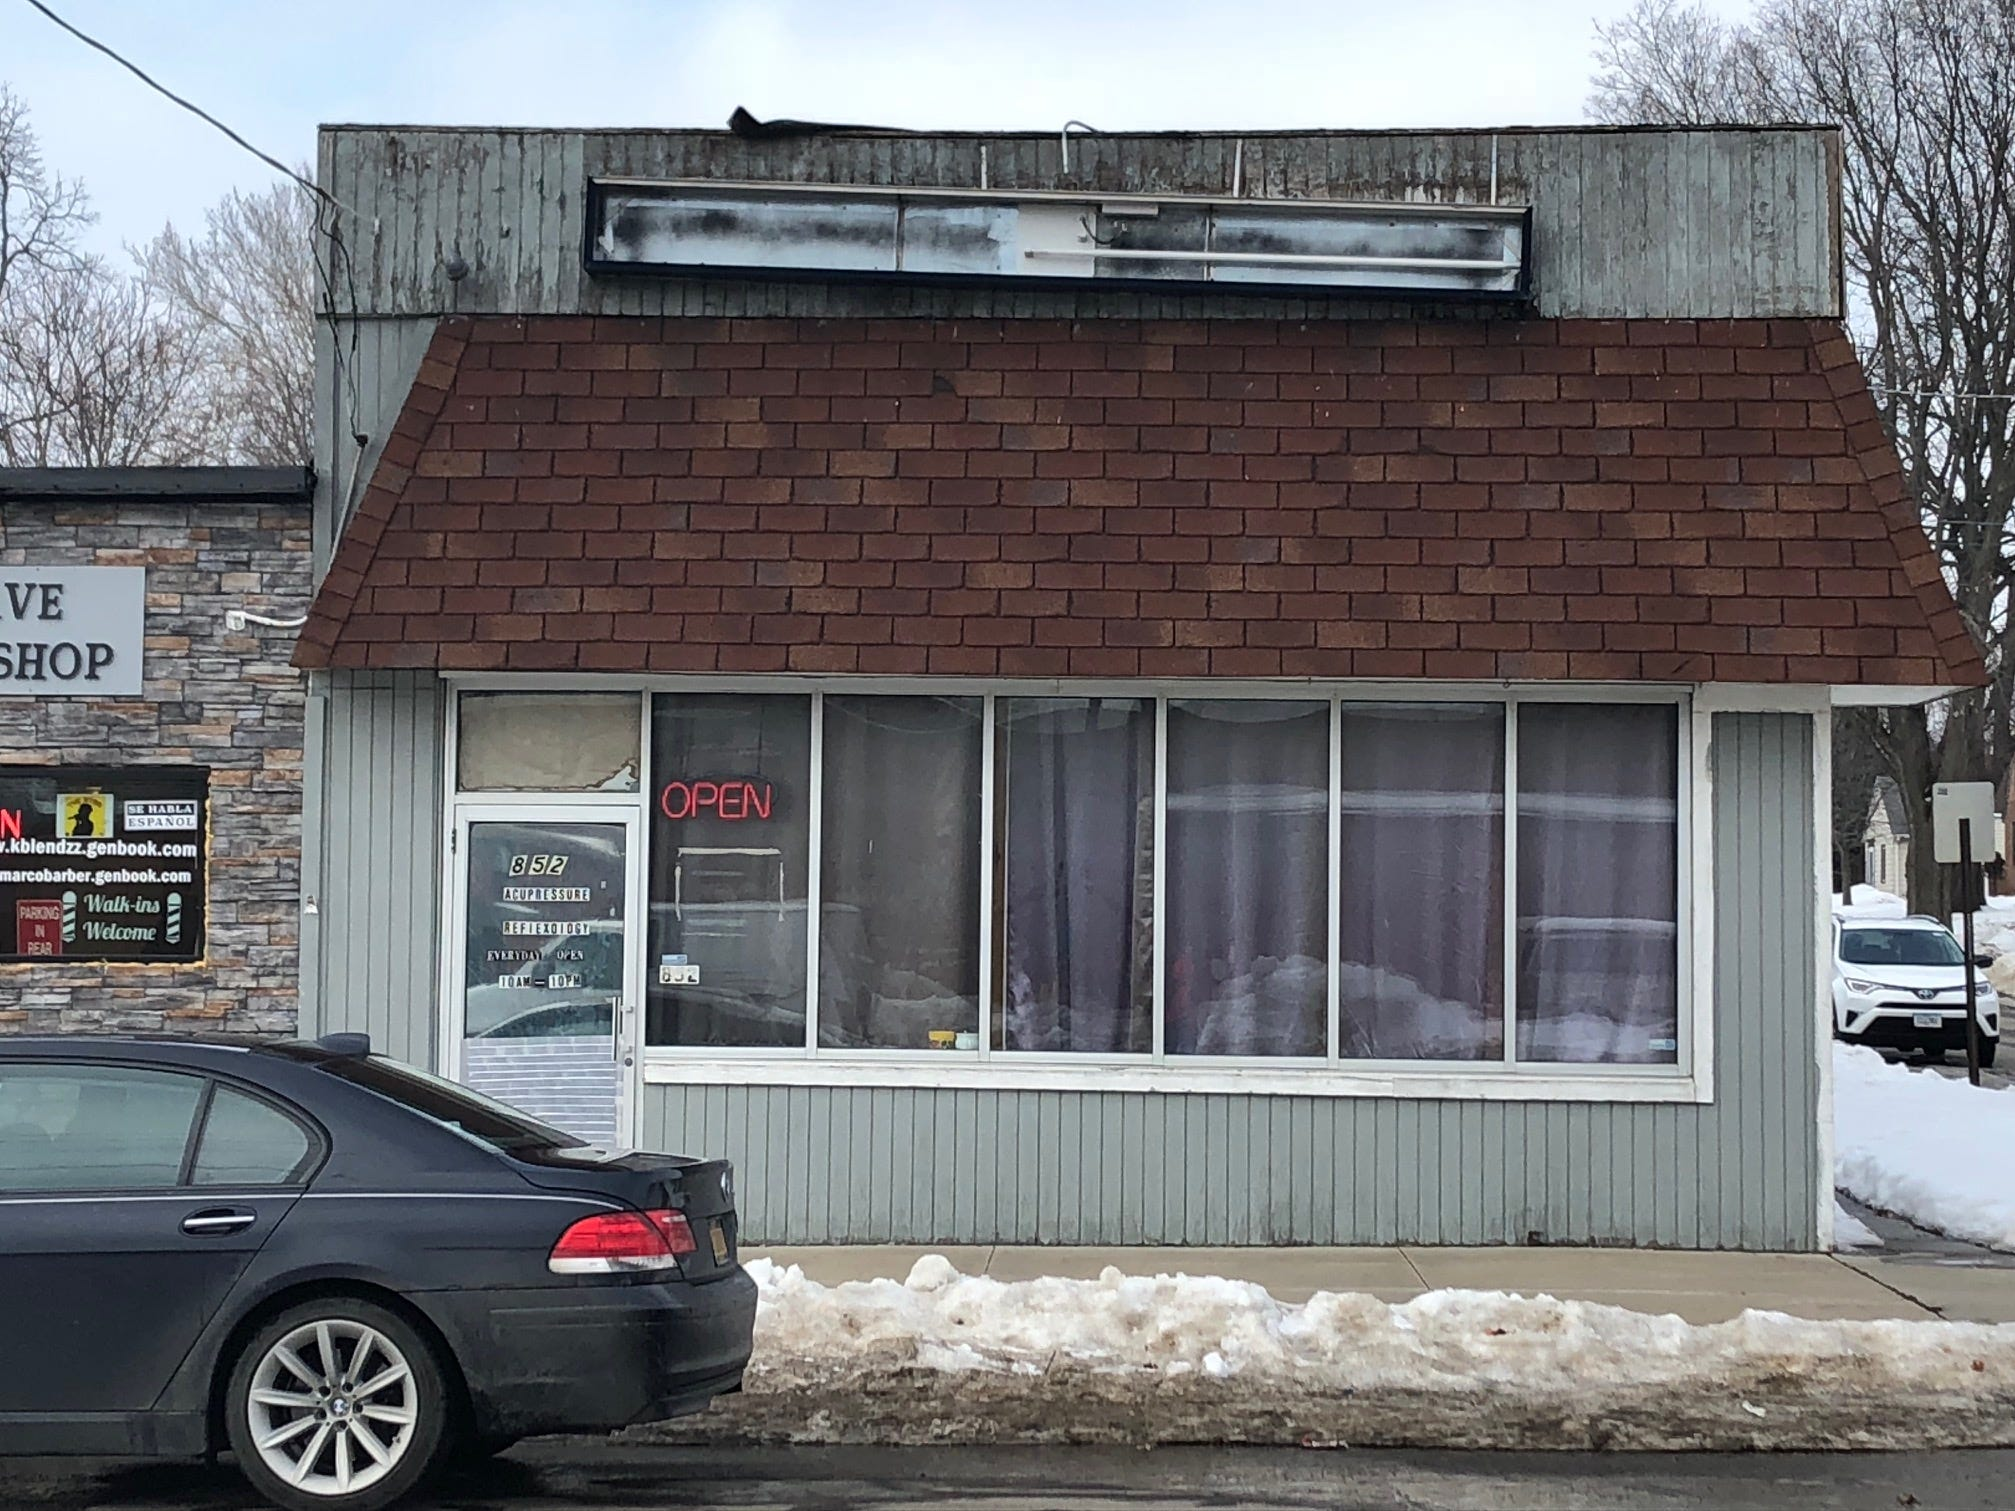 Watchdog sent customers into three Des Moines massage parlors. Here's what happened.